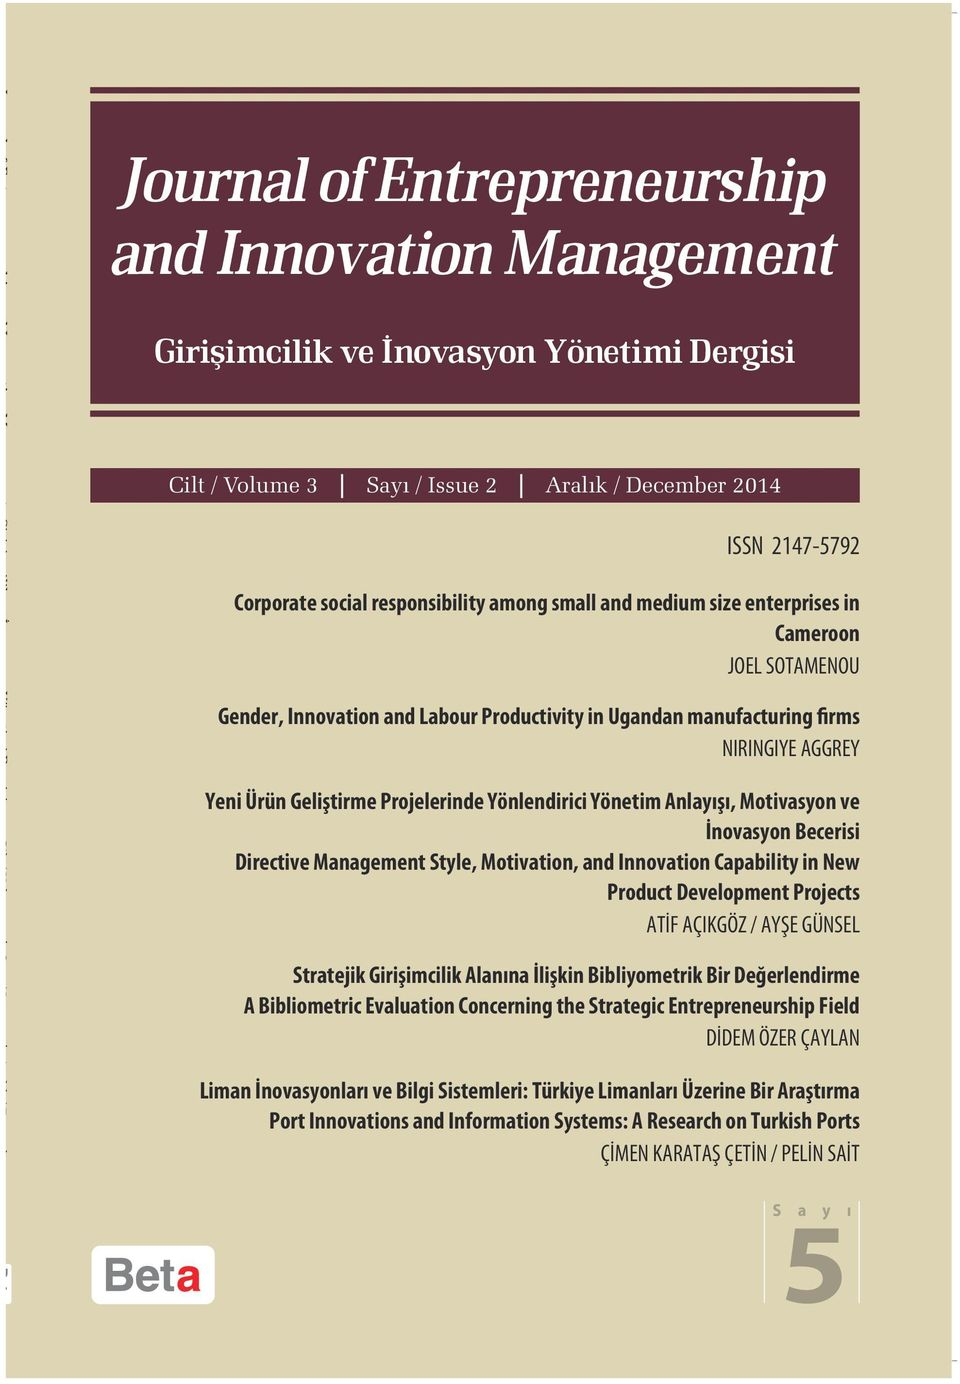 Yönlendirici Yönetim Anlayışı, Motivasyon ve İnovasyon Becerisi Directive Management Style, Motivation, and Innovation Capability in New Product Development Projects ATİF AÇIKGÖZ / AYŞE GÜNSEL